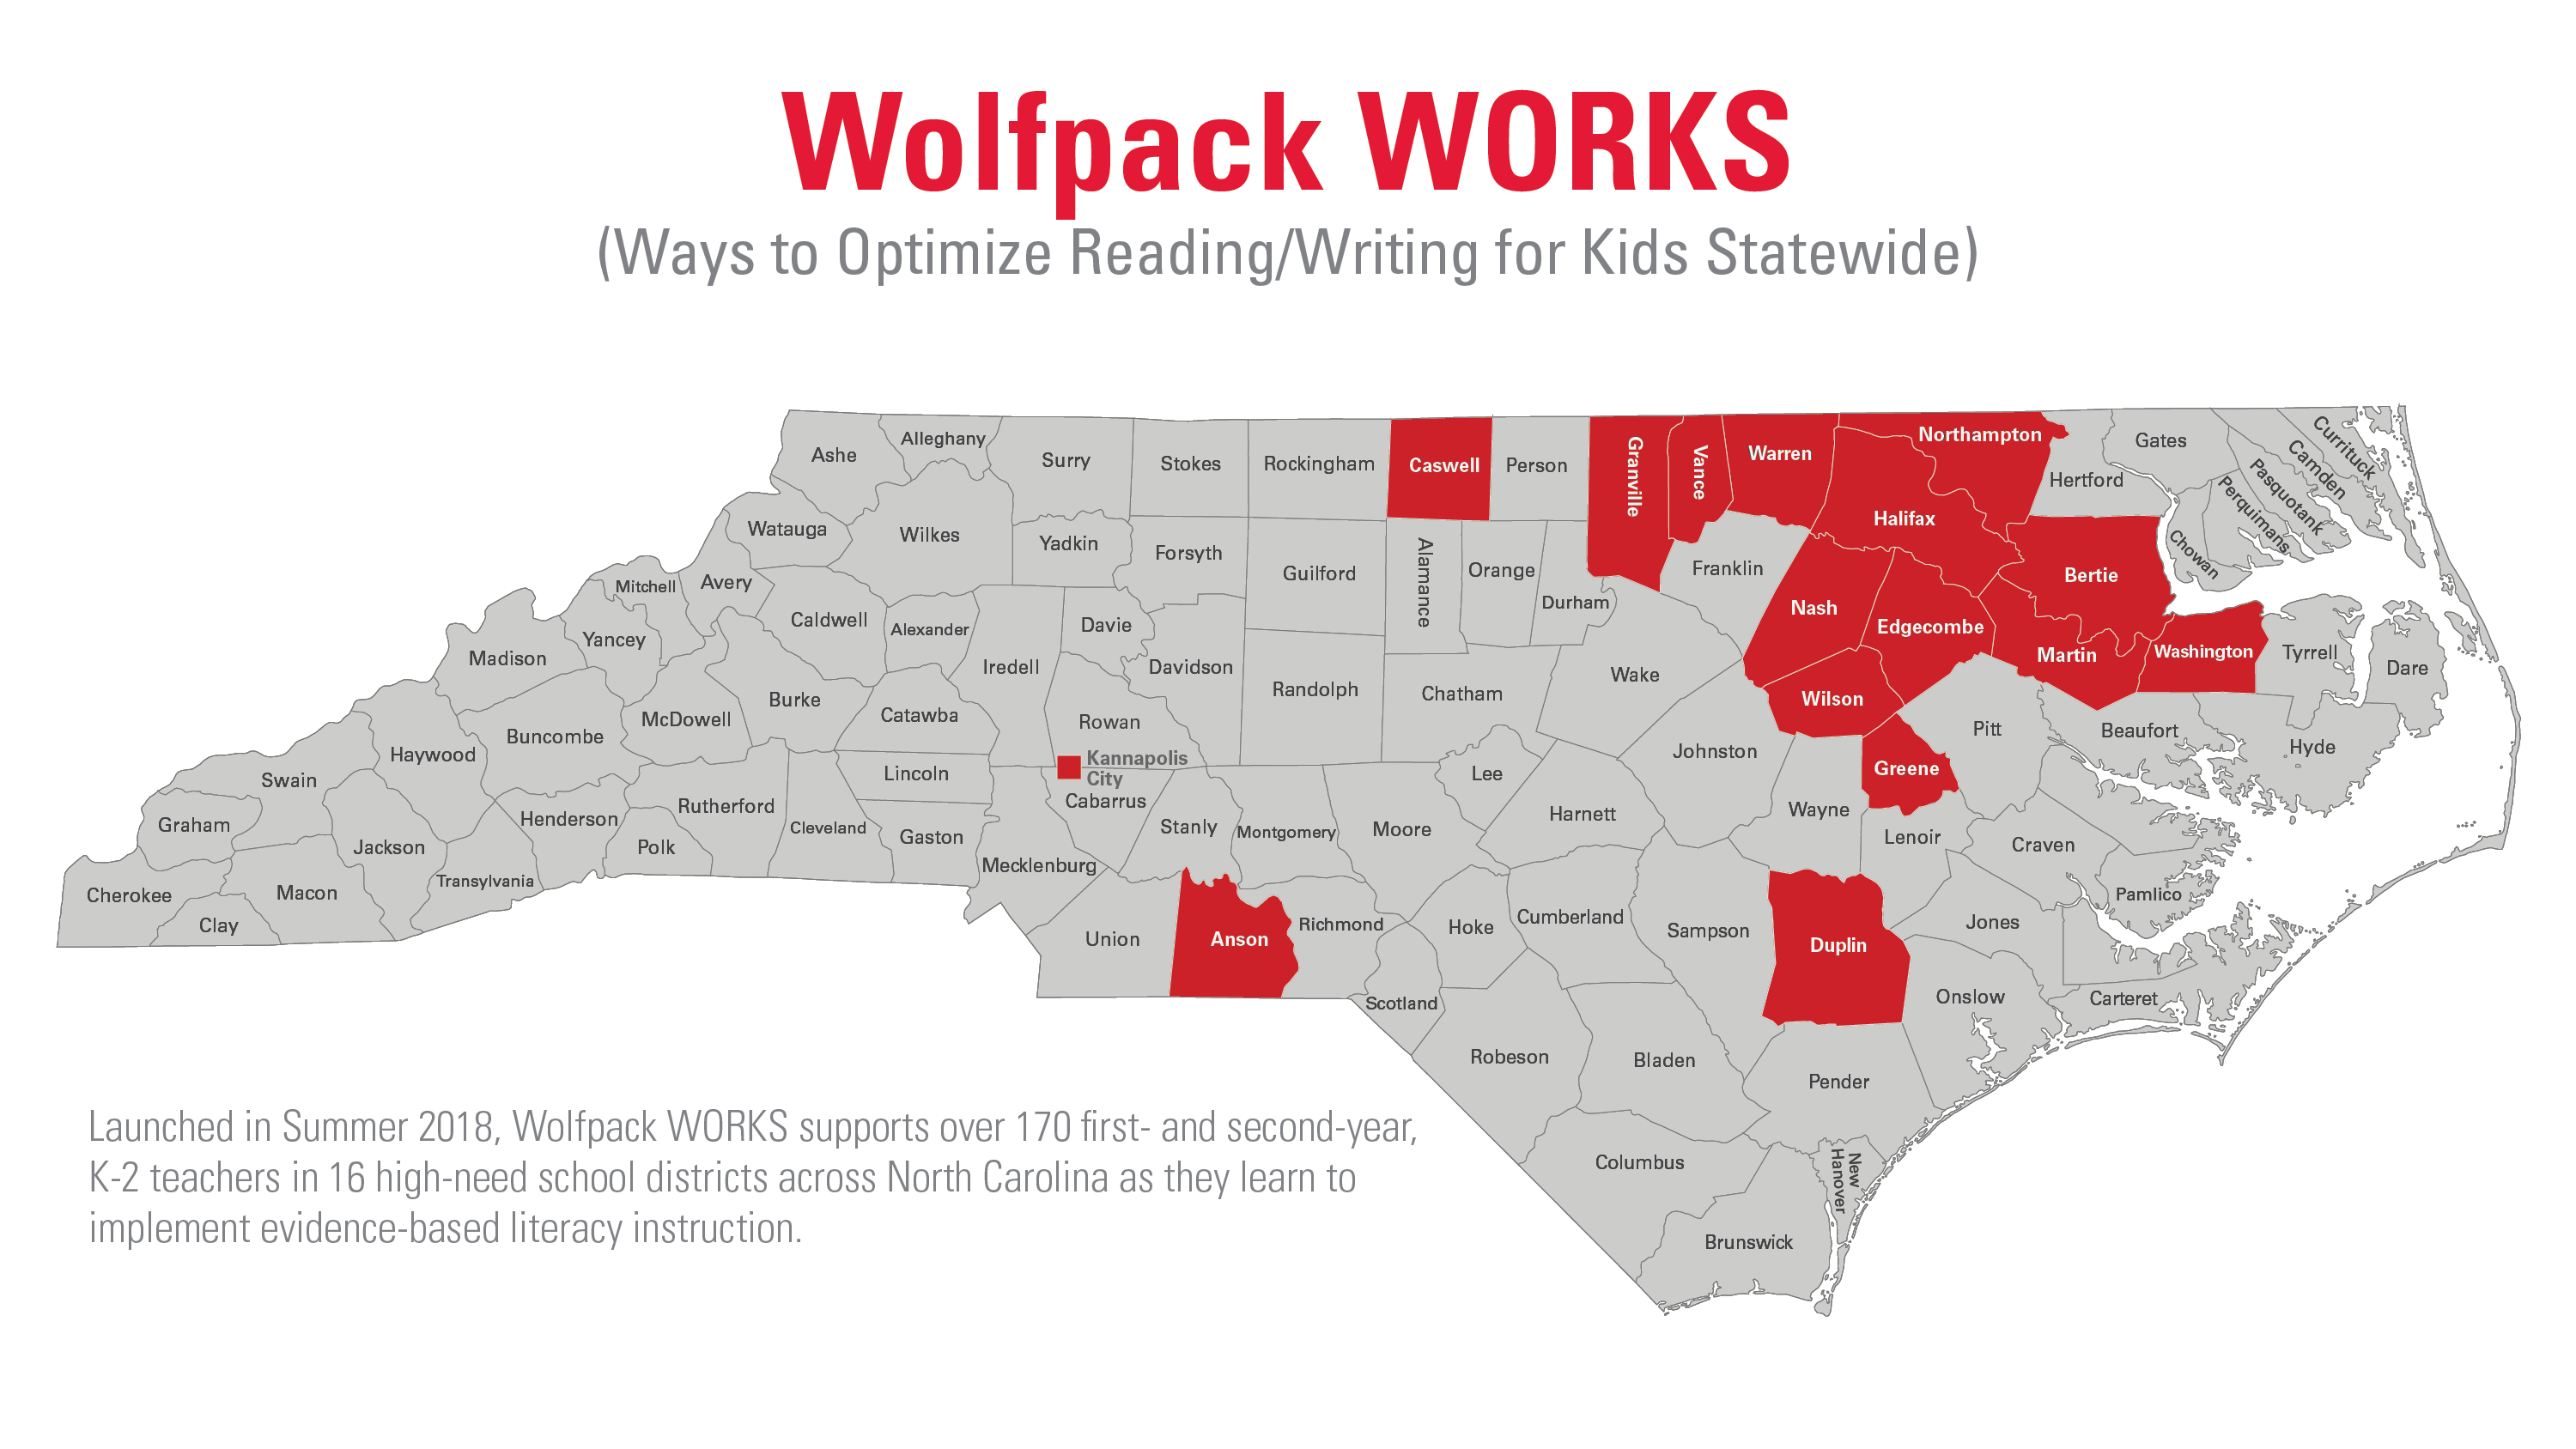 Launched in Summer 2018, Wolfpack WORKS supports over 170 first- and second-year, K-2 teachers in 16 high-need school districts across North Carolina as they learn to implement evidence-based literacy instruction.